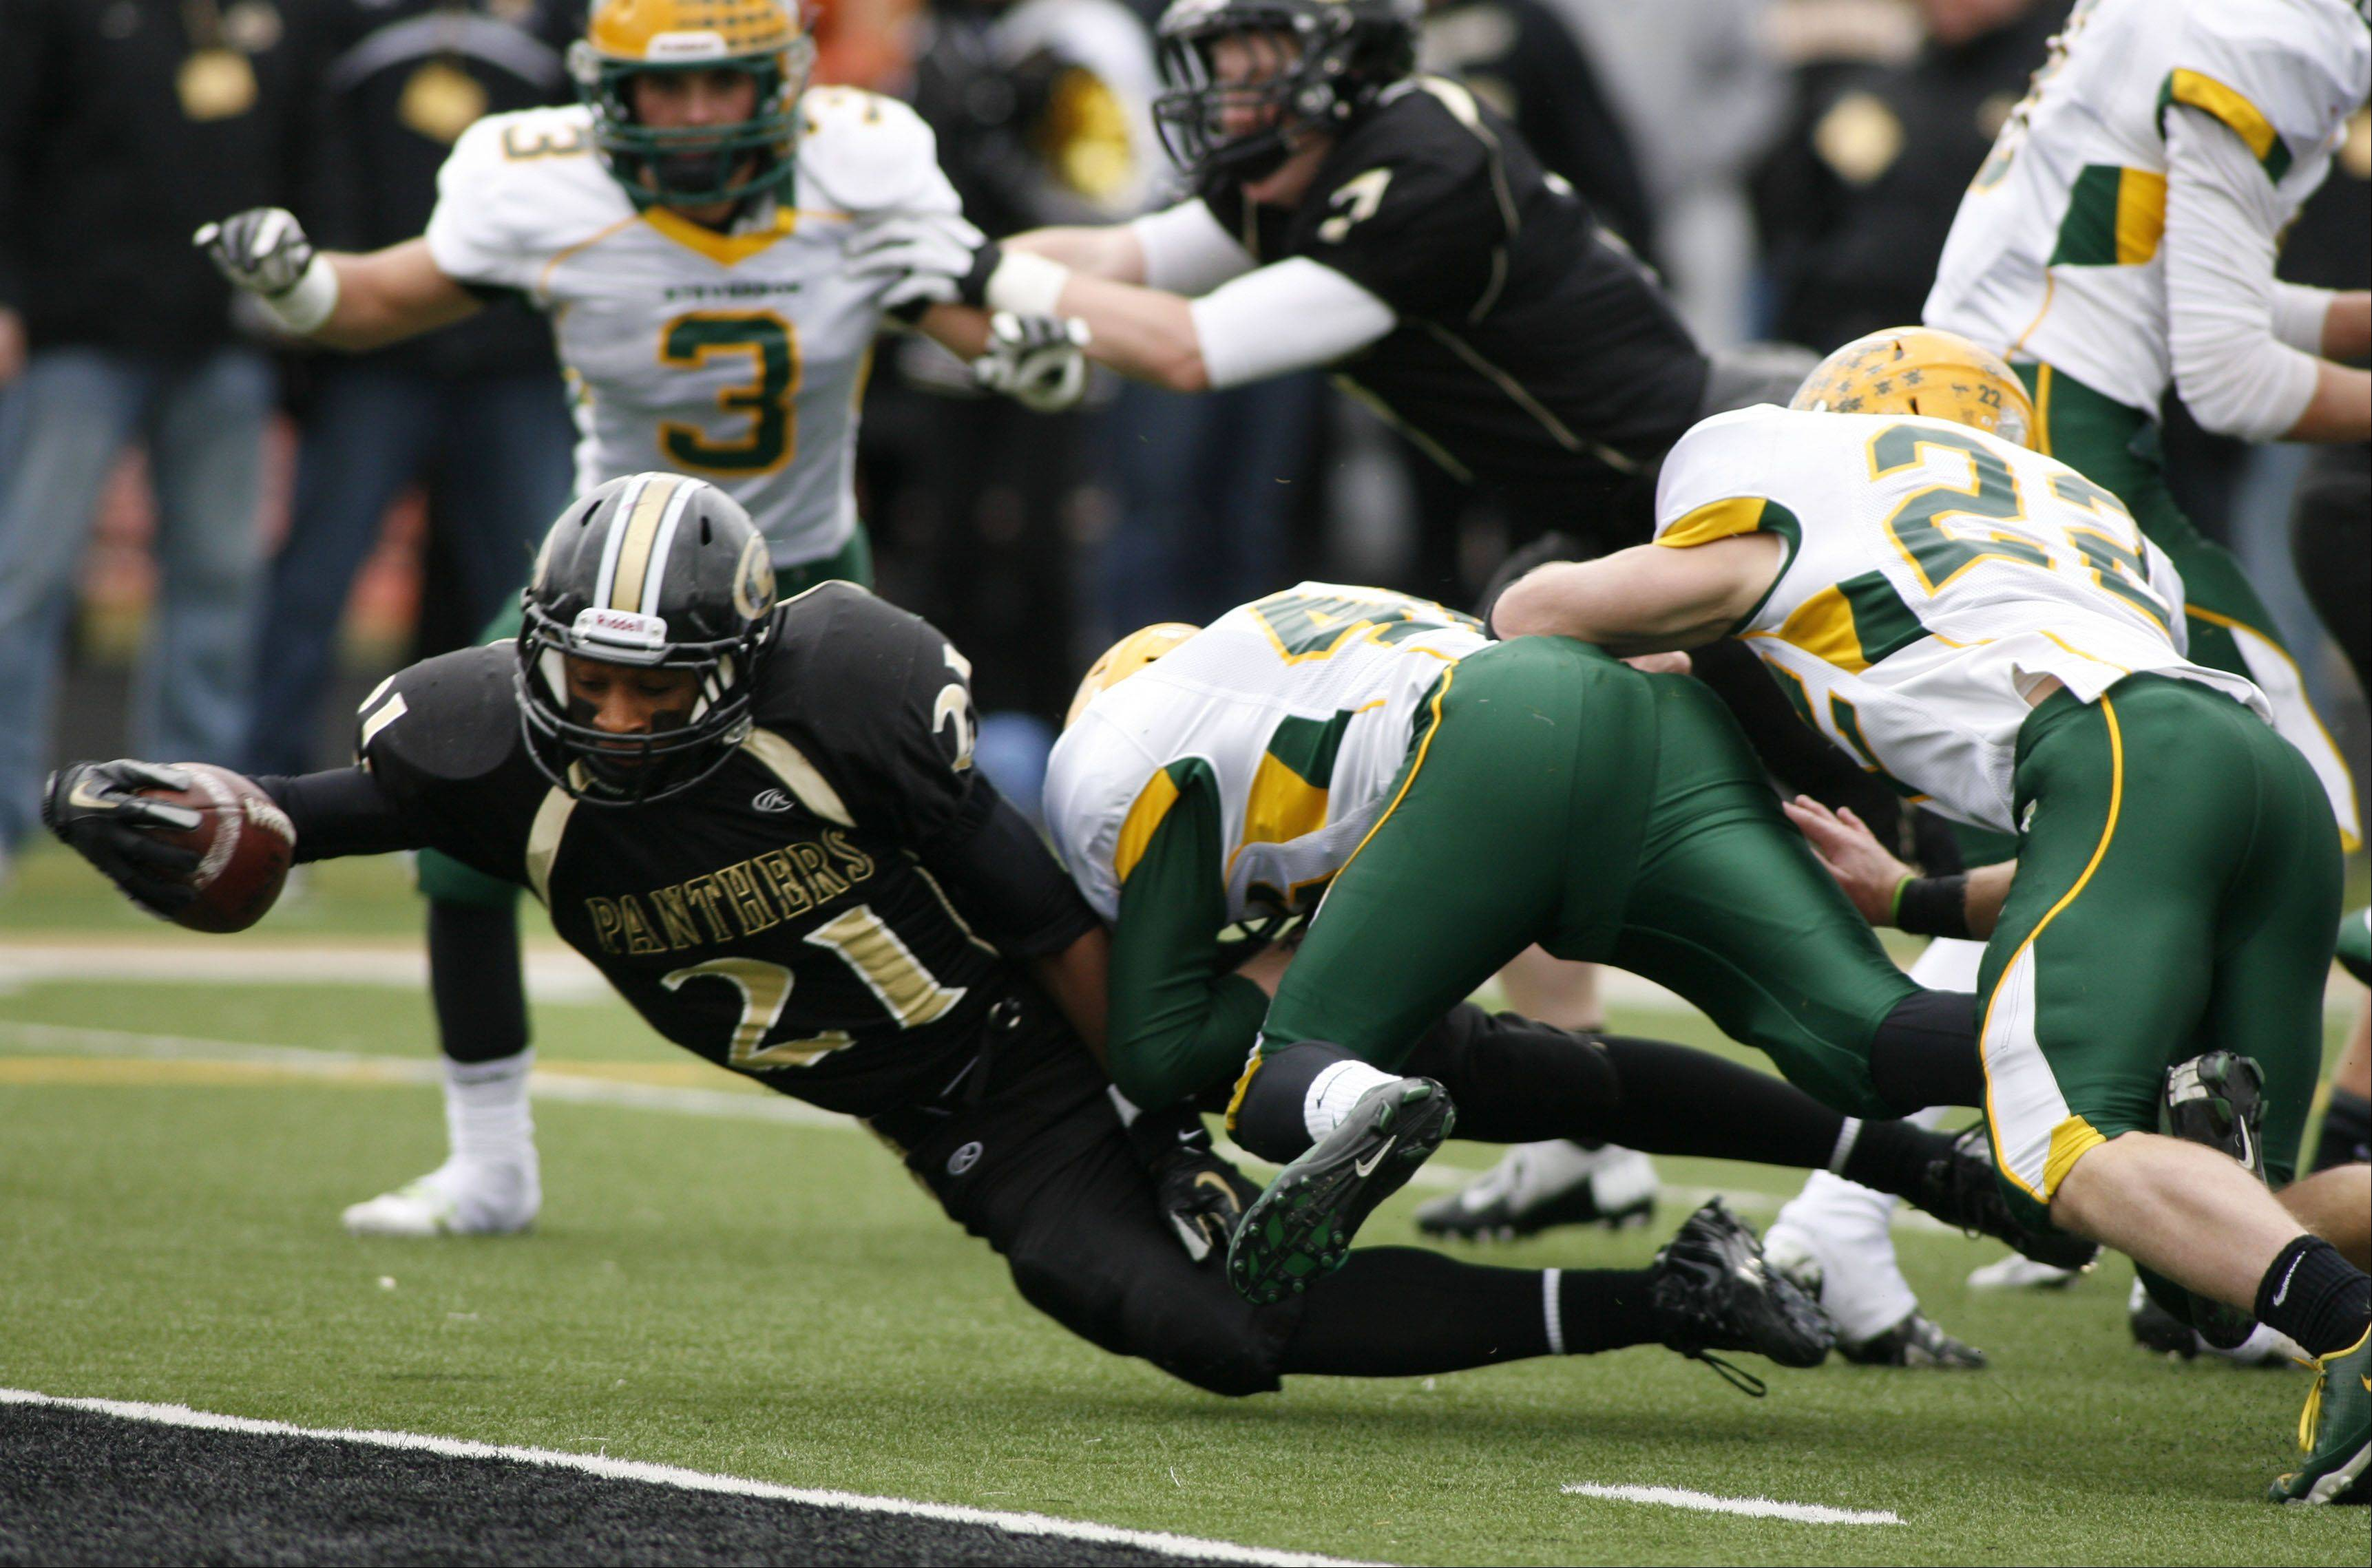 Glenbard North's Justin Jackson extends for a touchdown against Stevenson, during second round Class 8A football playoffs.